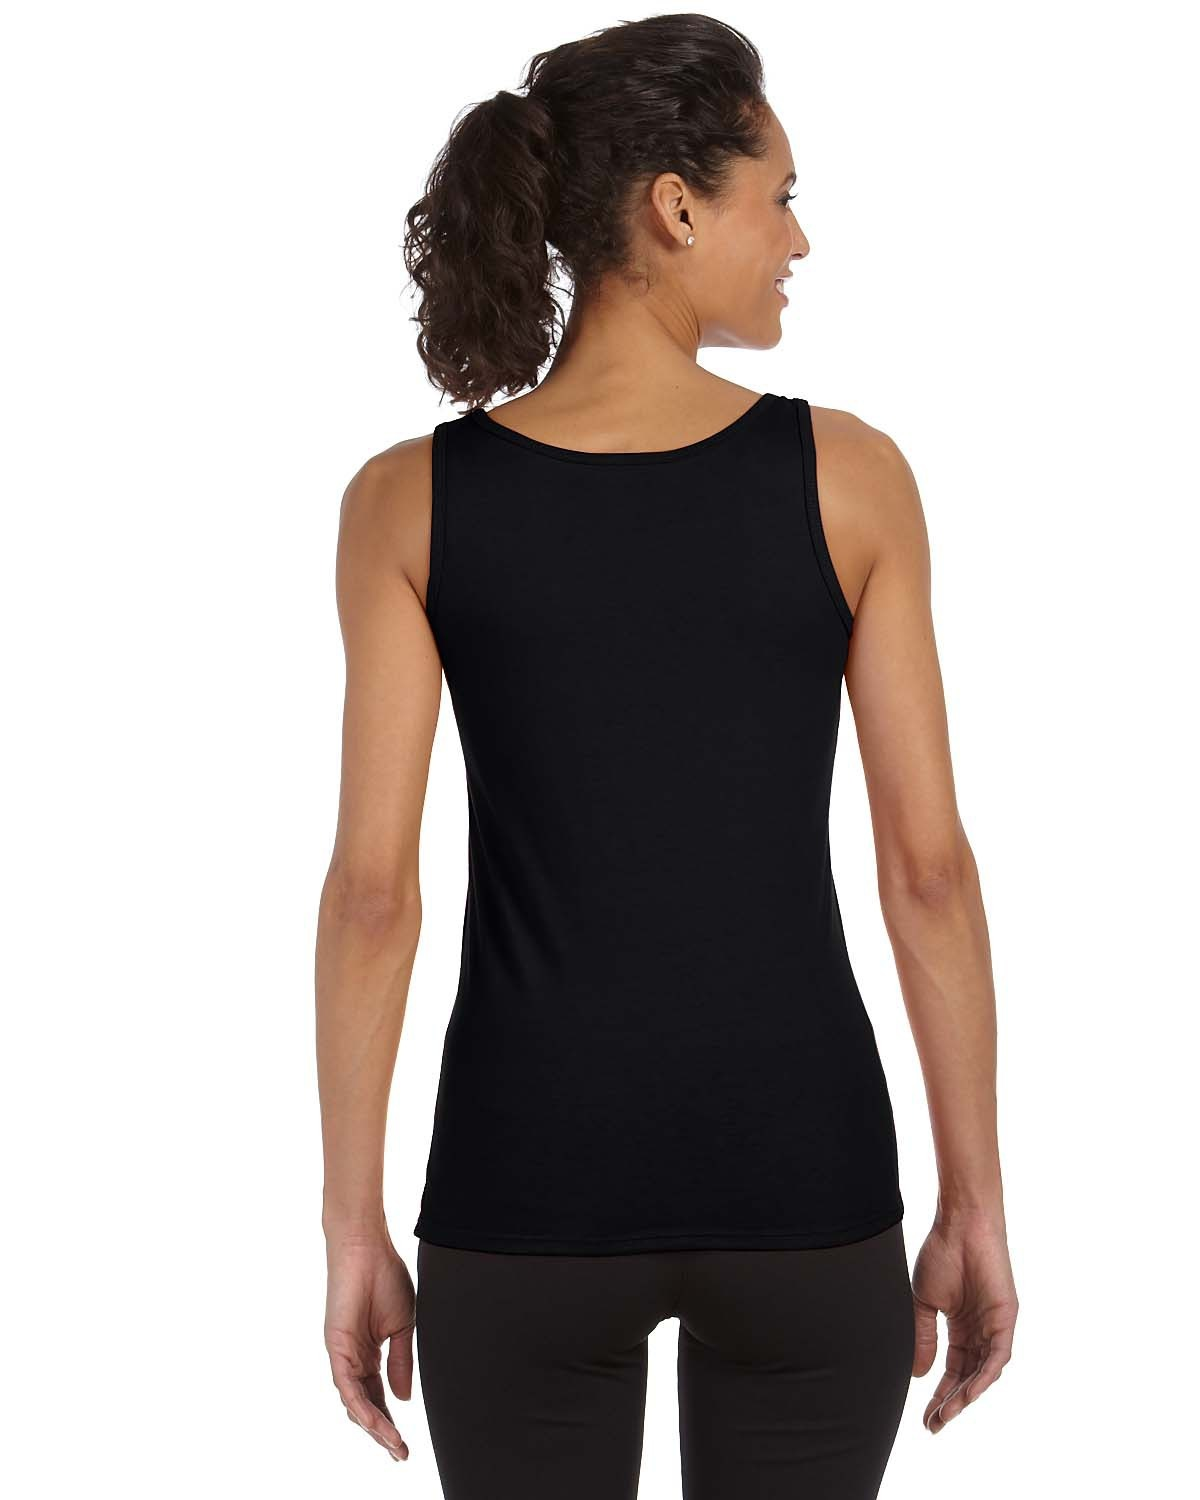 Blank Women S Black Tank Top Rnk Shops